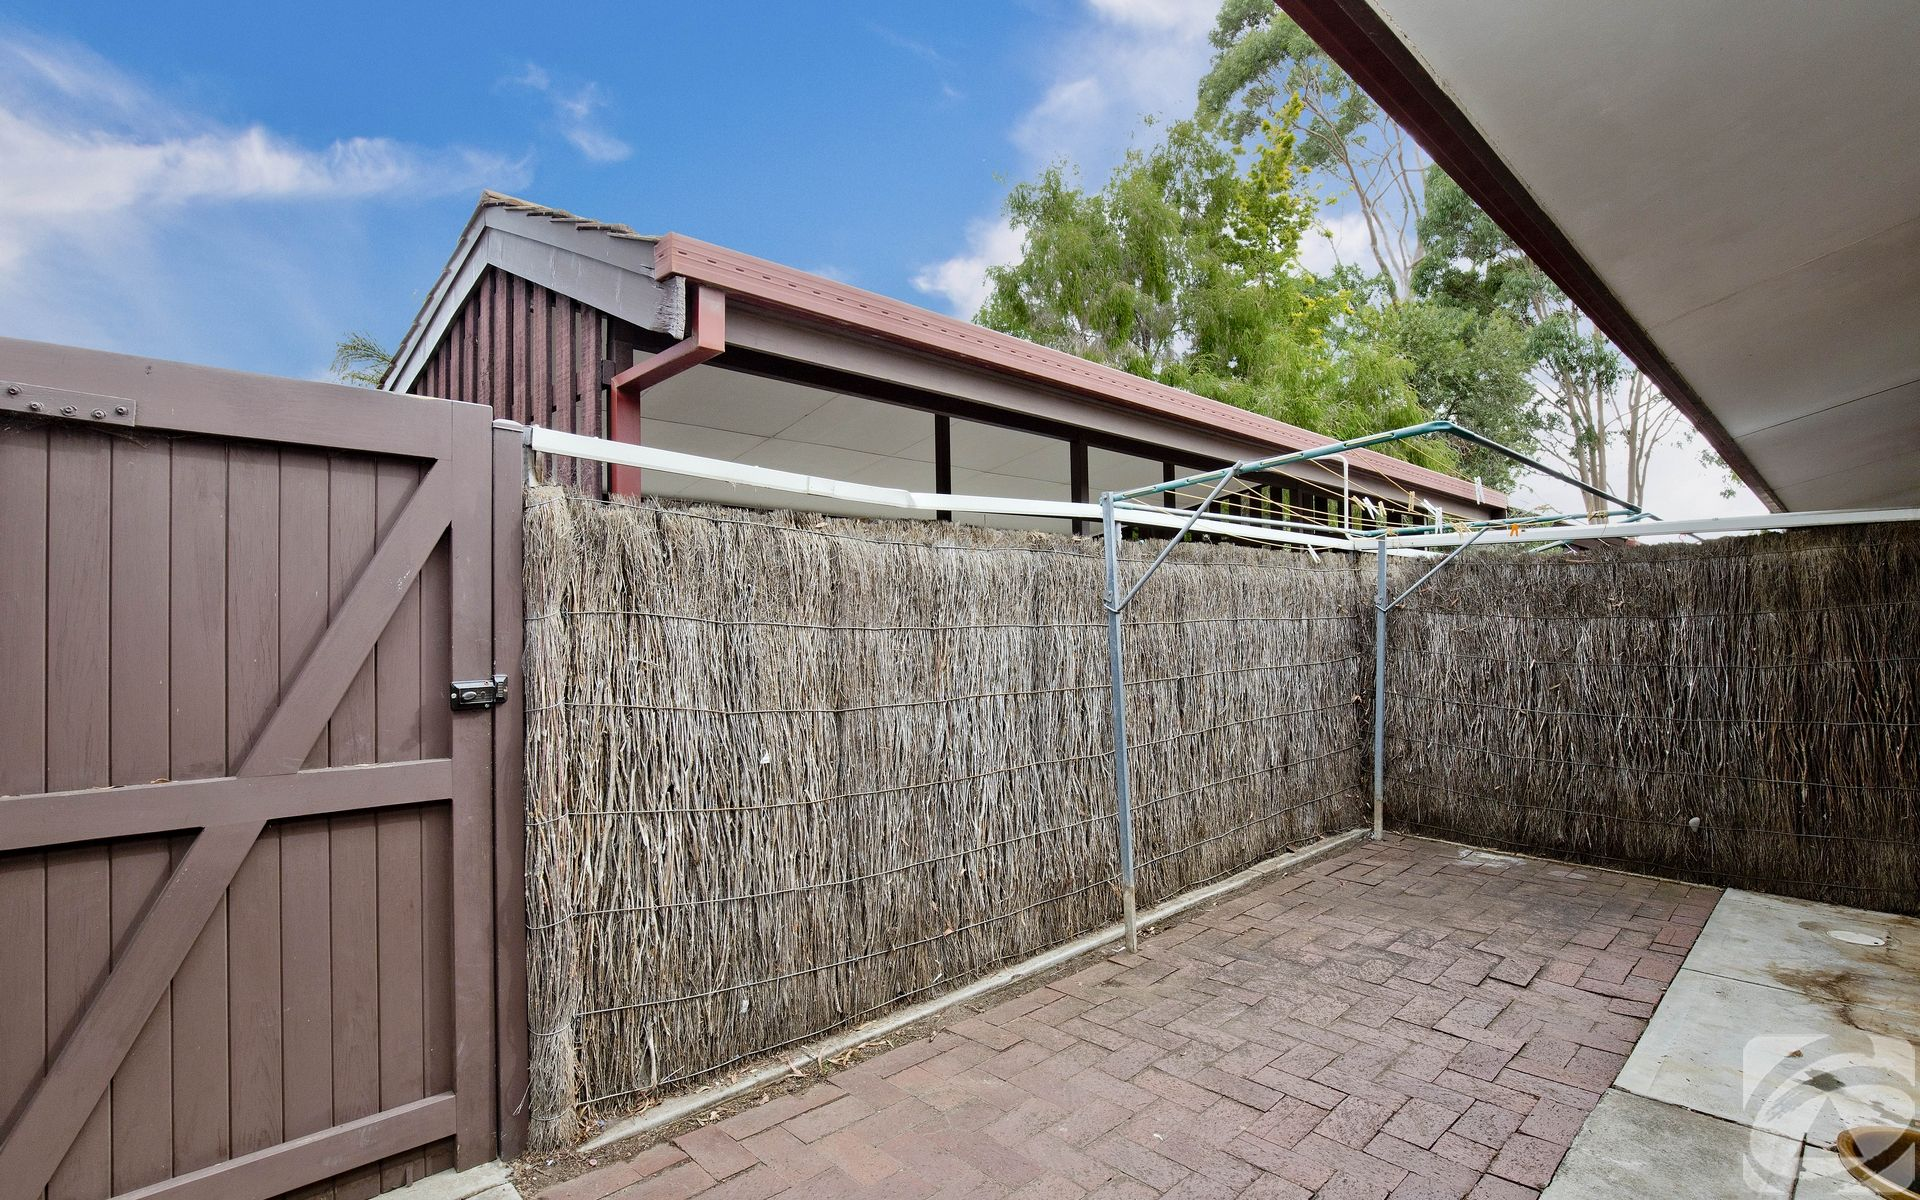 4/96 Hampstead Road, Broadview, SA 5083